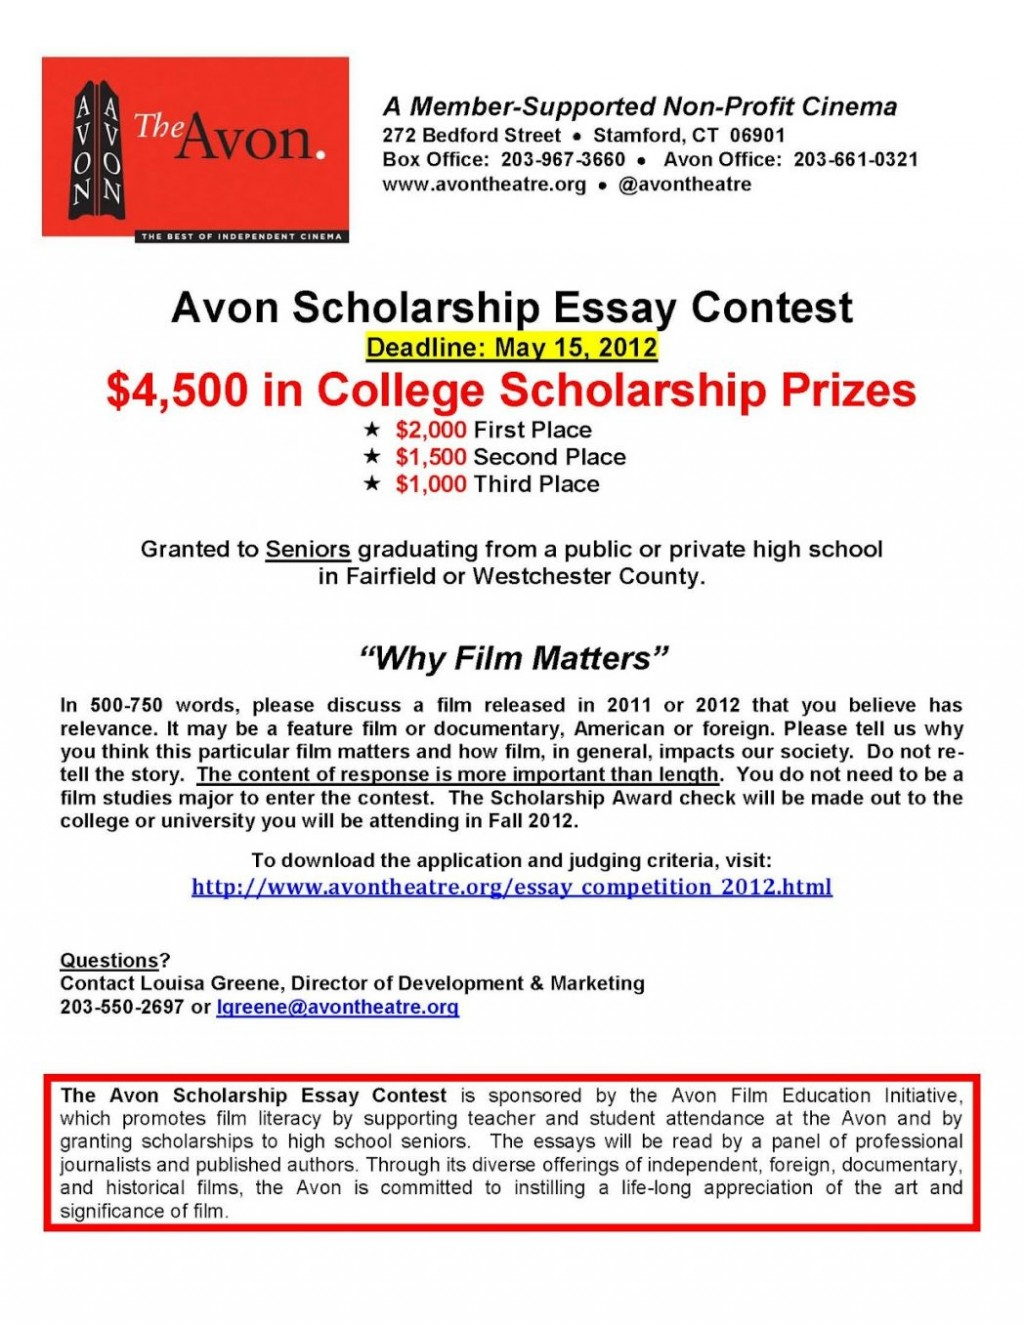 004 No Essay College Scholarship Prowler Avonscholarshipessaycontest2012 Easy Scholarships For High School Students 1048x1357 Awesome Free Required Hispanic Large